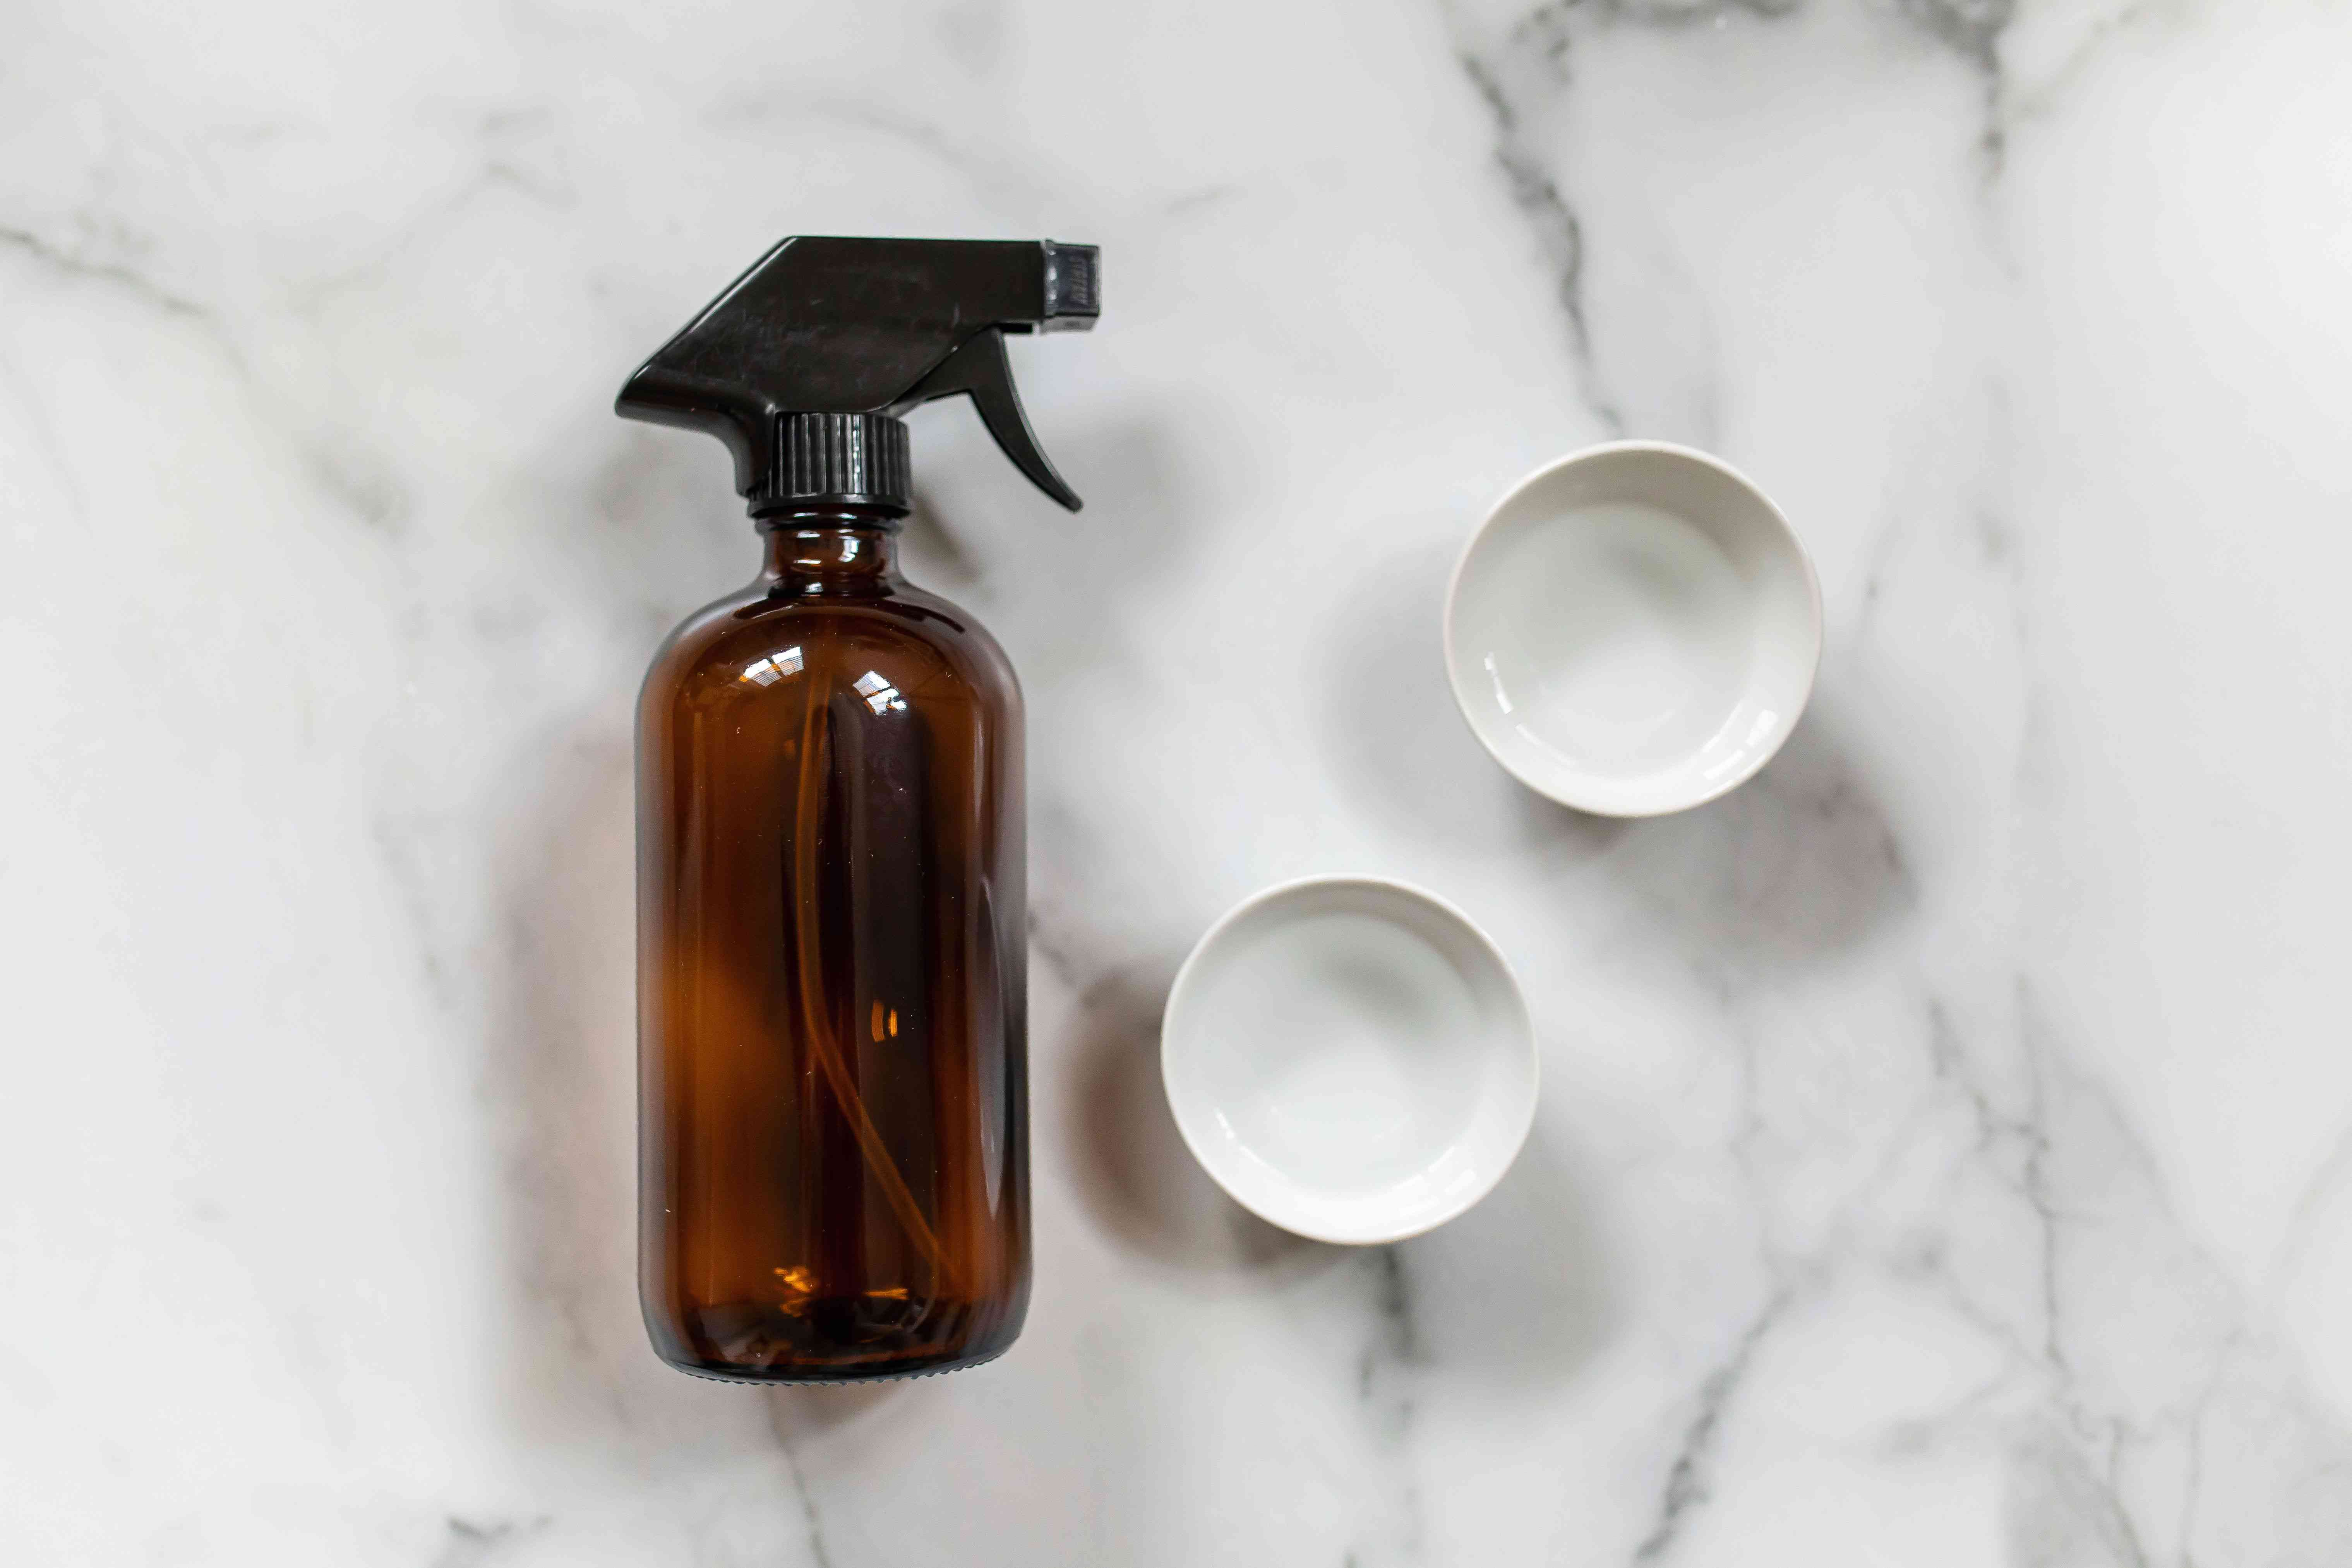 Ingredients for vinegar and alcohol glass cleaner